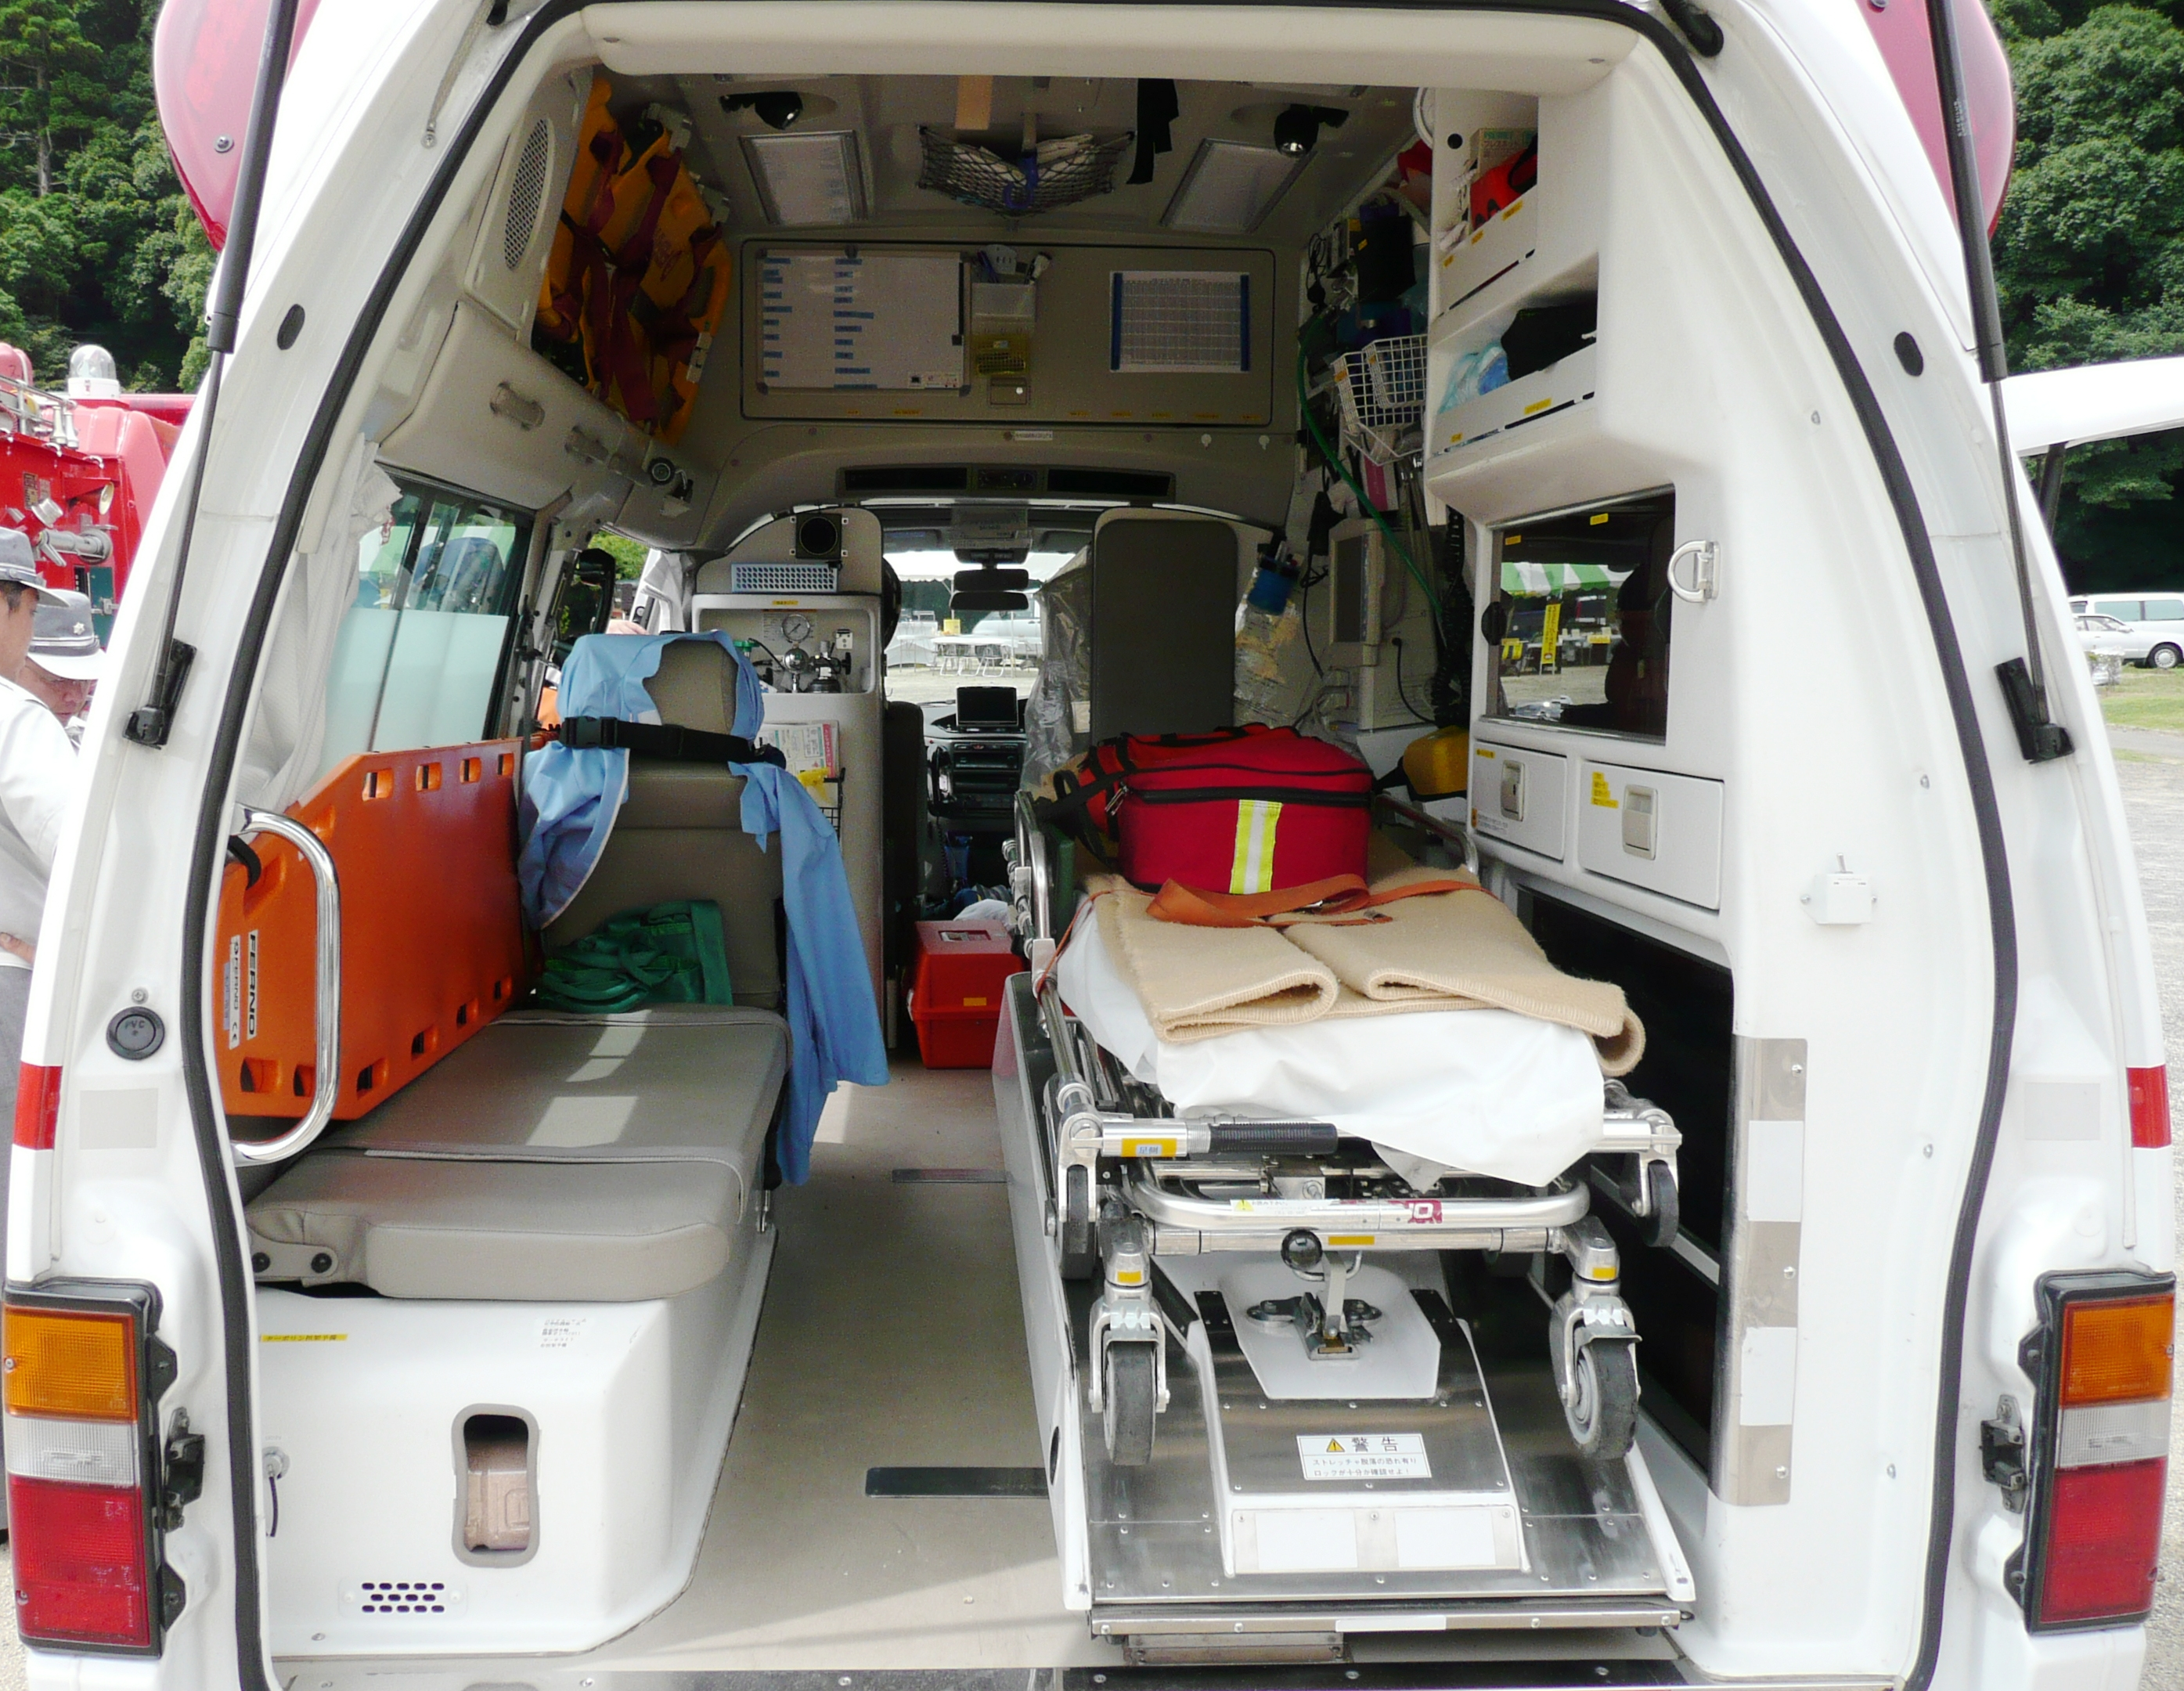 File:Ambulance-interior.jpg - Wikimedia Commons